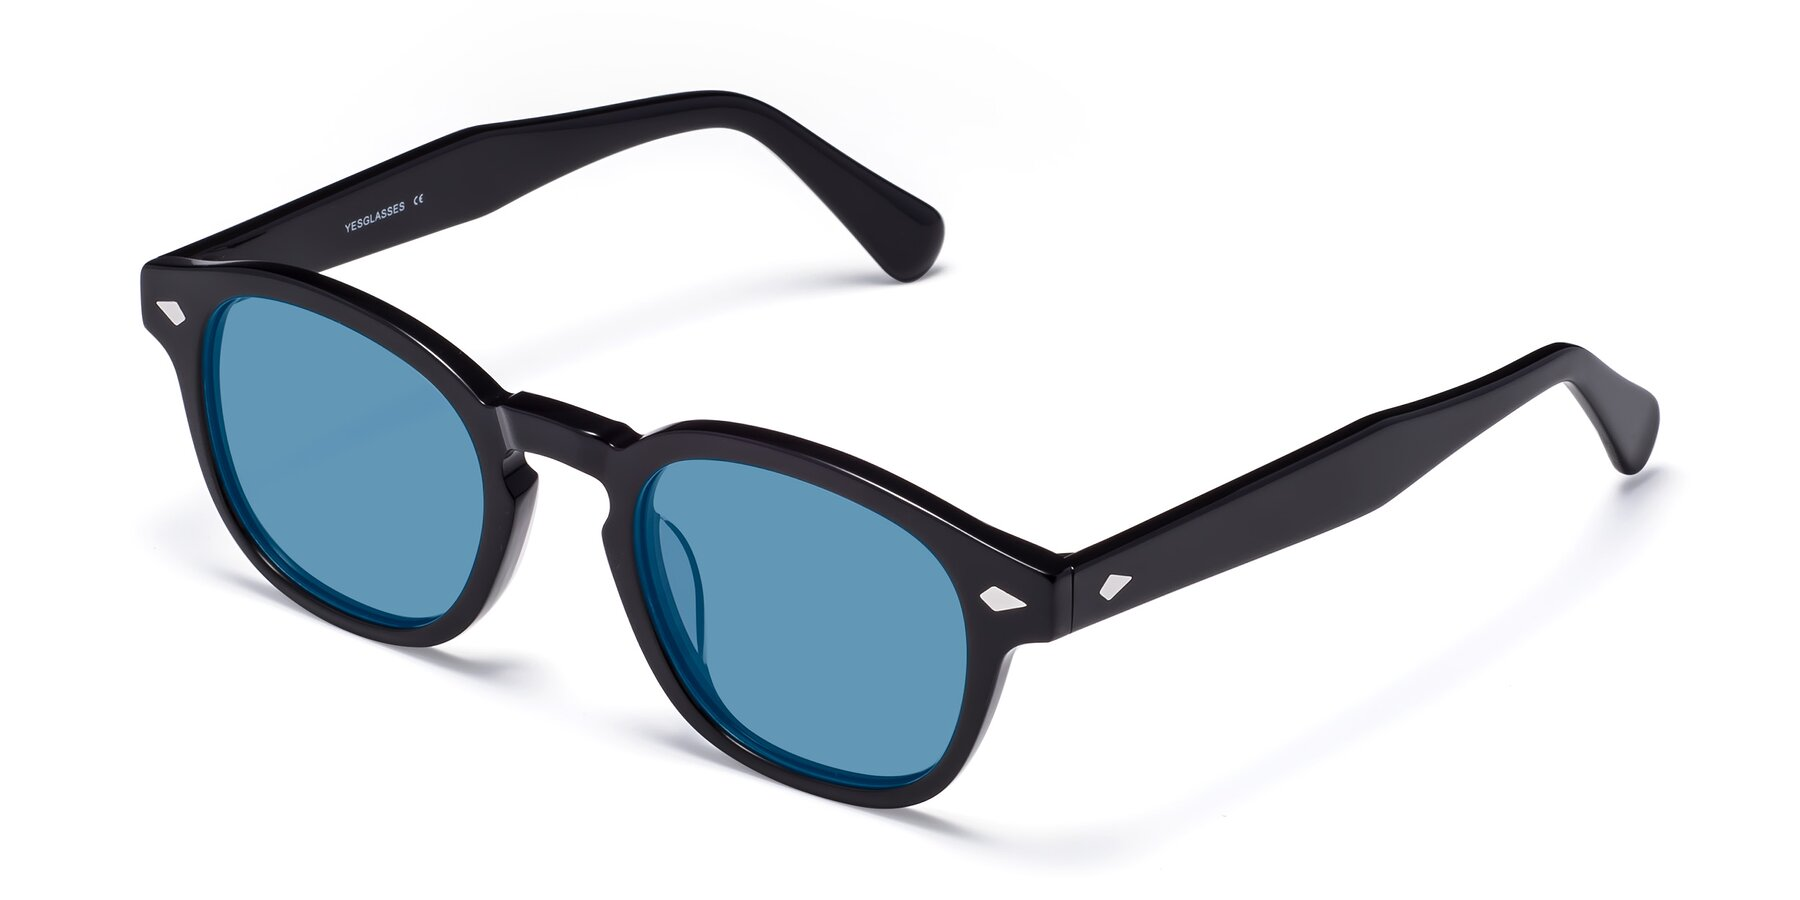 Angle of WALL-E in Black with Medium Blue Tinted Lenses